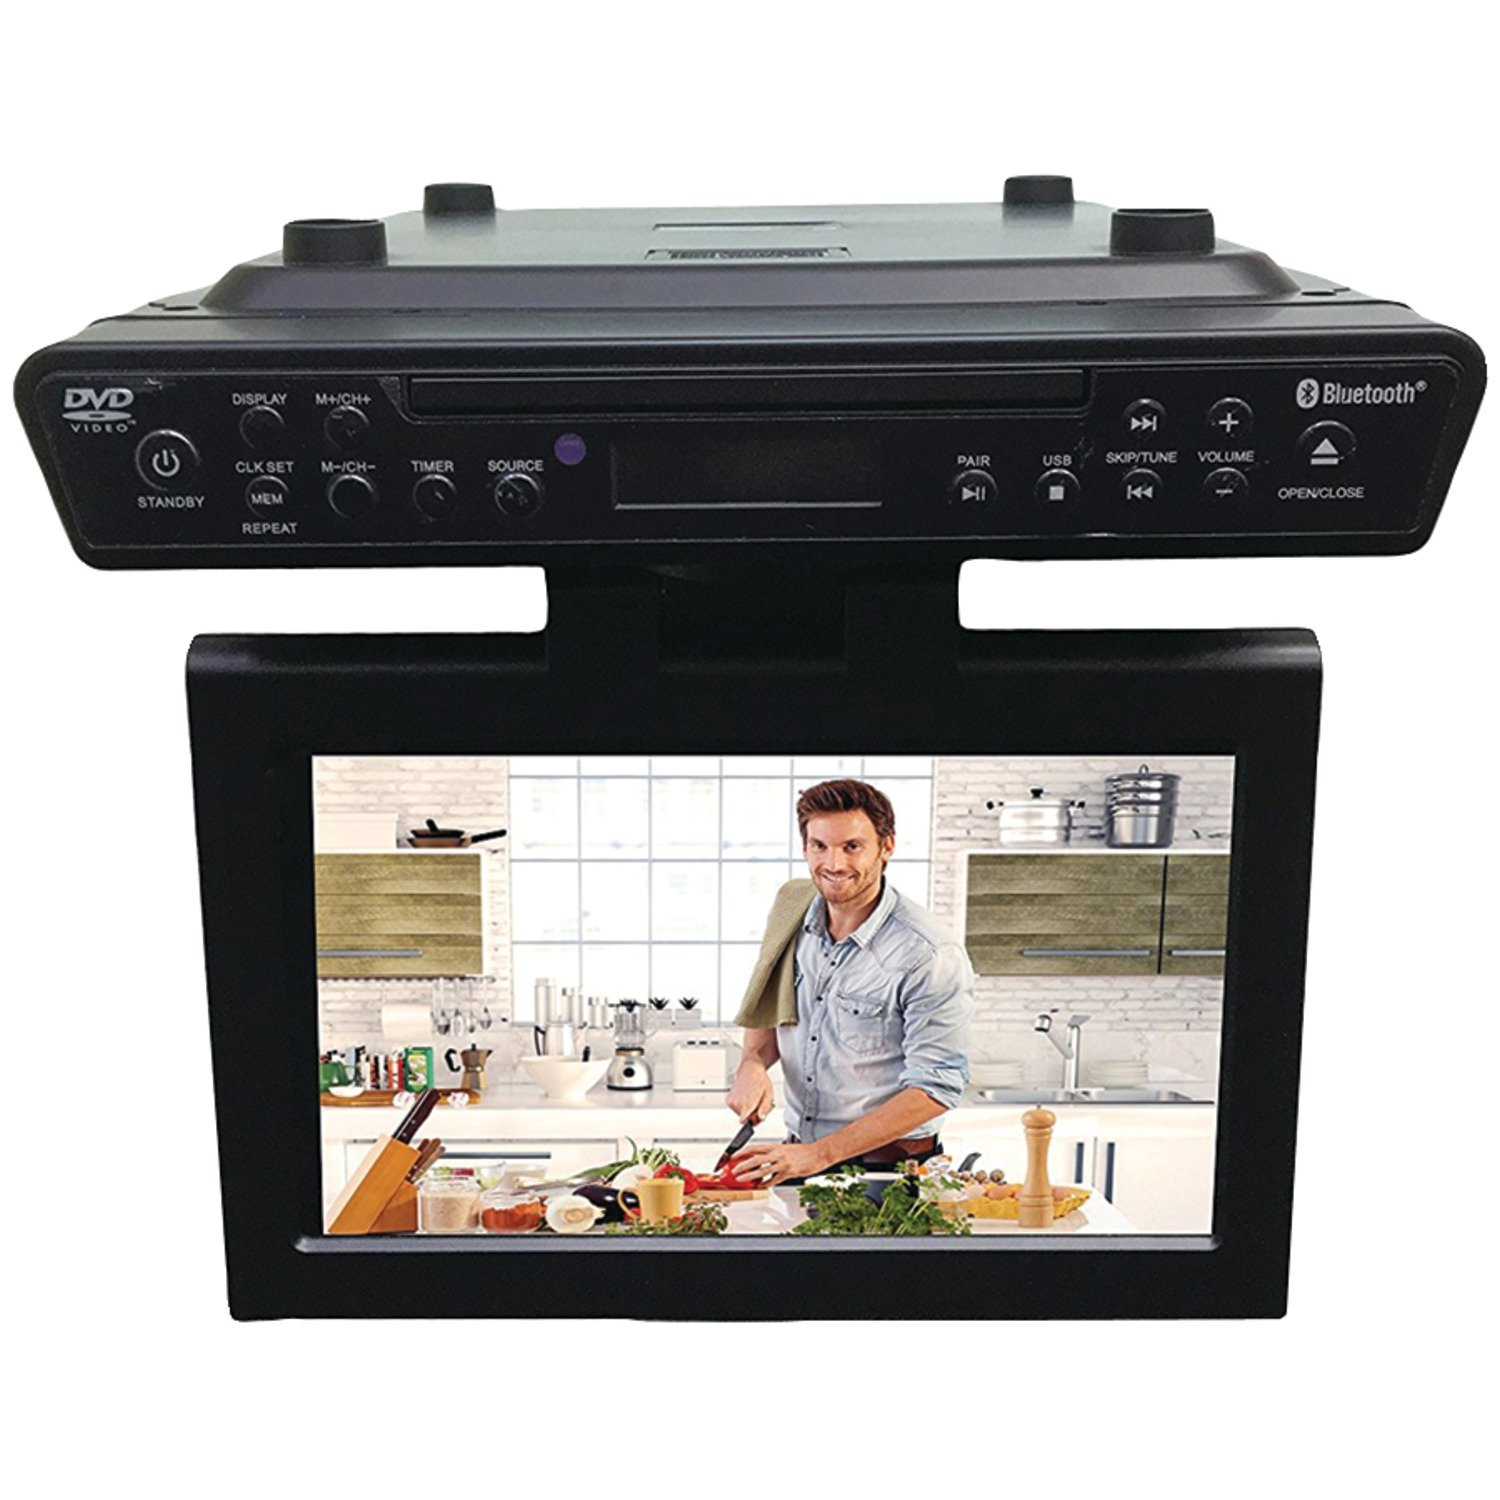 Kitchen tv under cabinet - Amazon Com Sylvania Skcr2706bt 10 2 Under Cabinet Kitchen Tv With Built In Dvd Player Hdmi Bluetooth Electronics